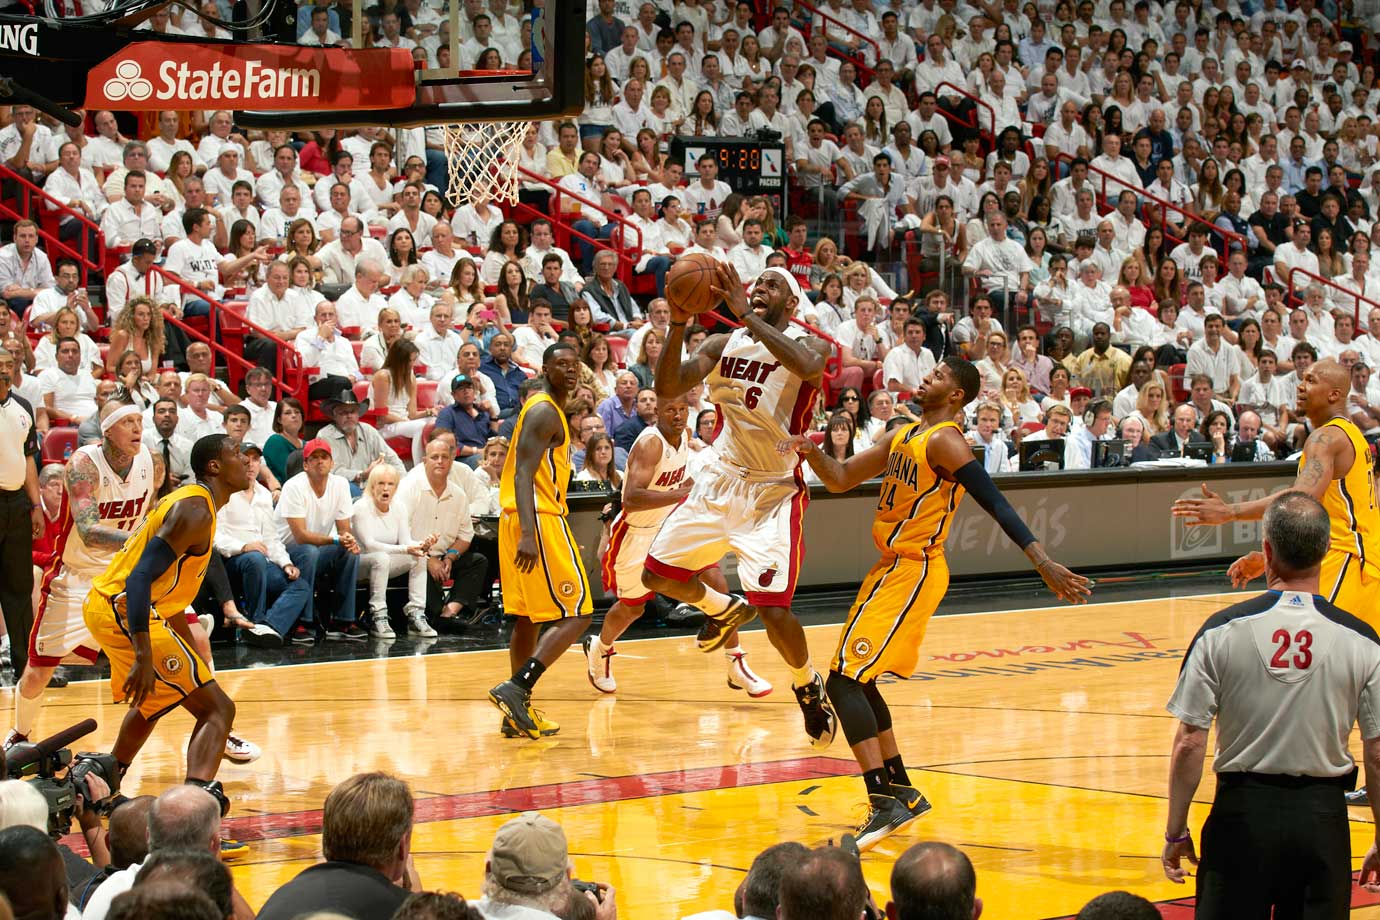 LeBron James capped off a triple-double (30 points, 10 assists, 10 rebounds) with a buzzer-beating, game-winning layup in overtime of Miami's 103-102 win over Indiana. James was the first player in NBA playoff history to record a triple-double and buzzer-beating game-winner in the same game.